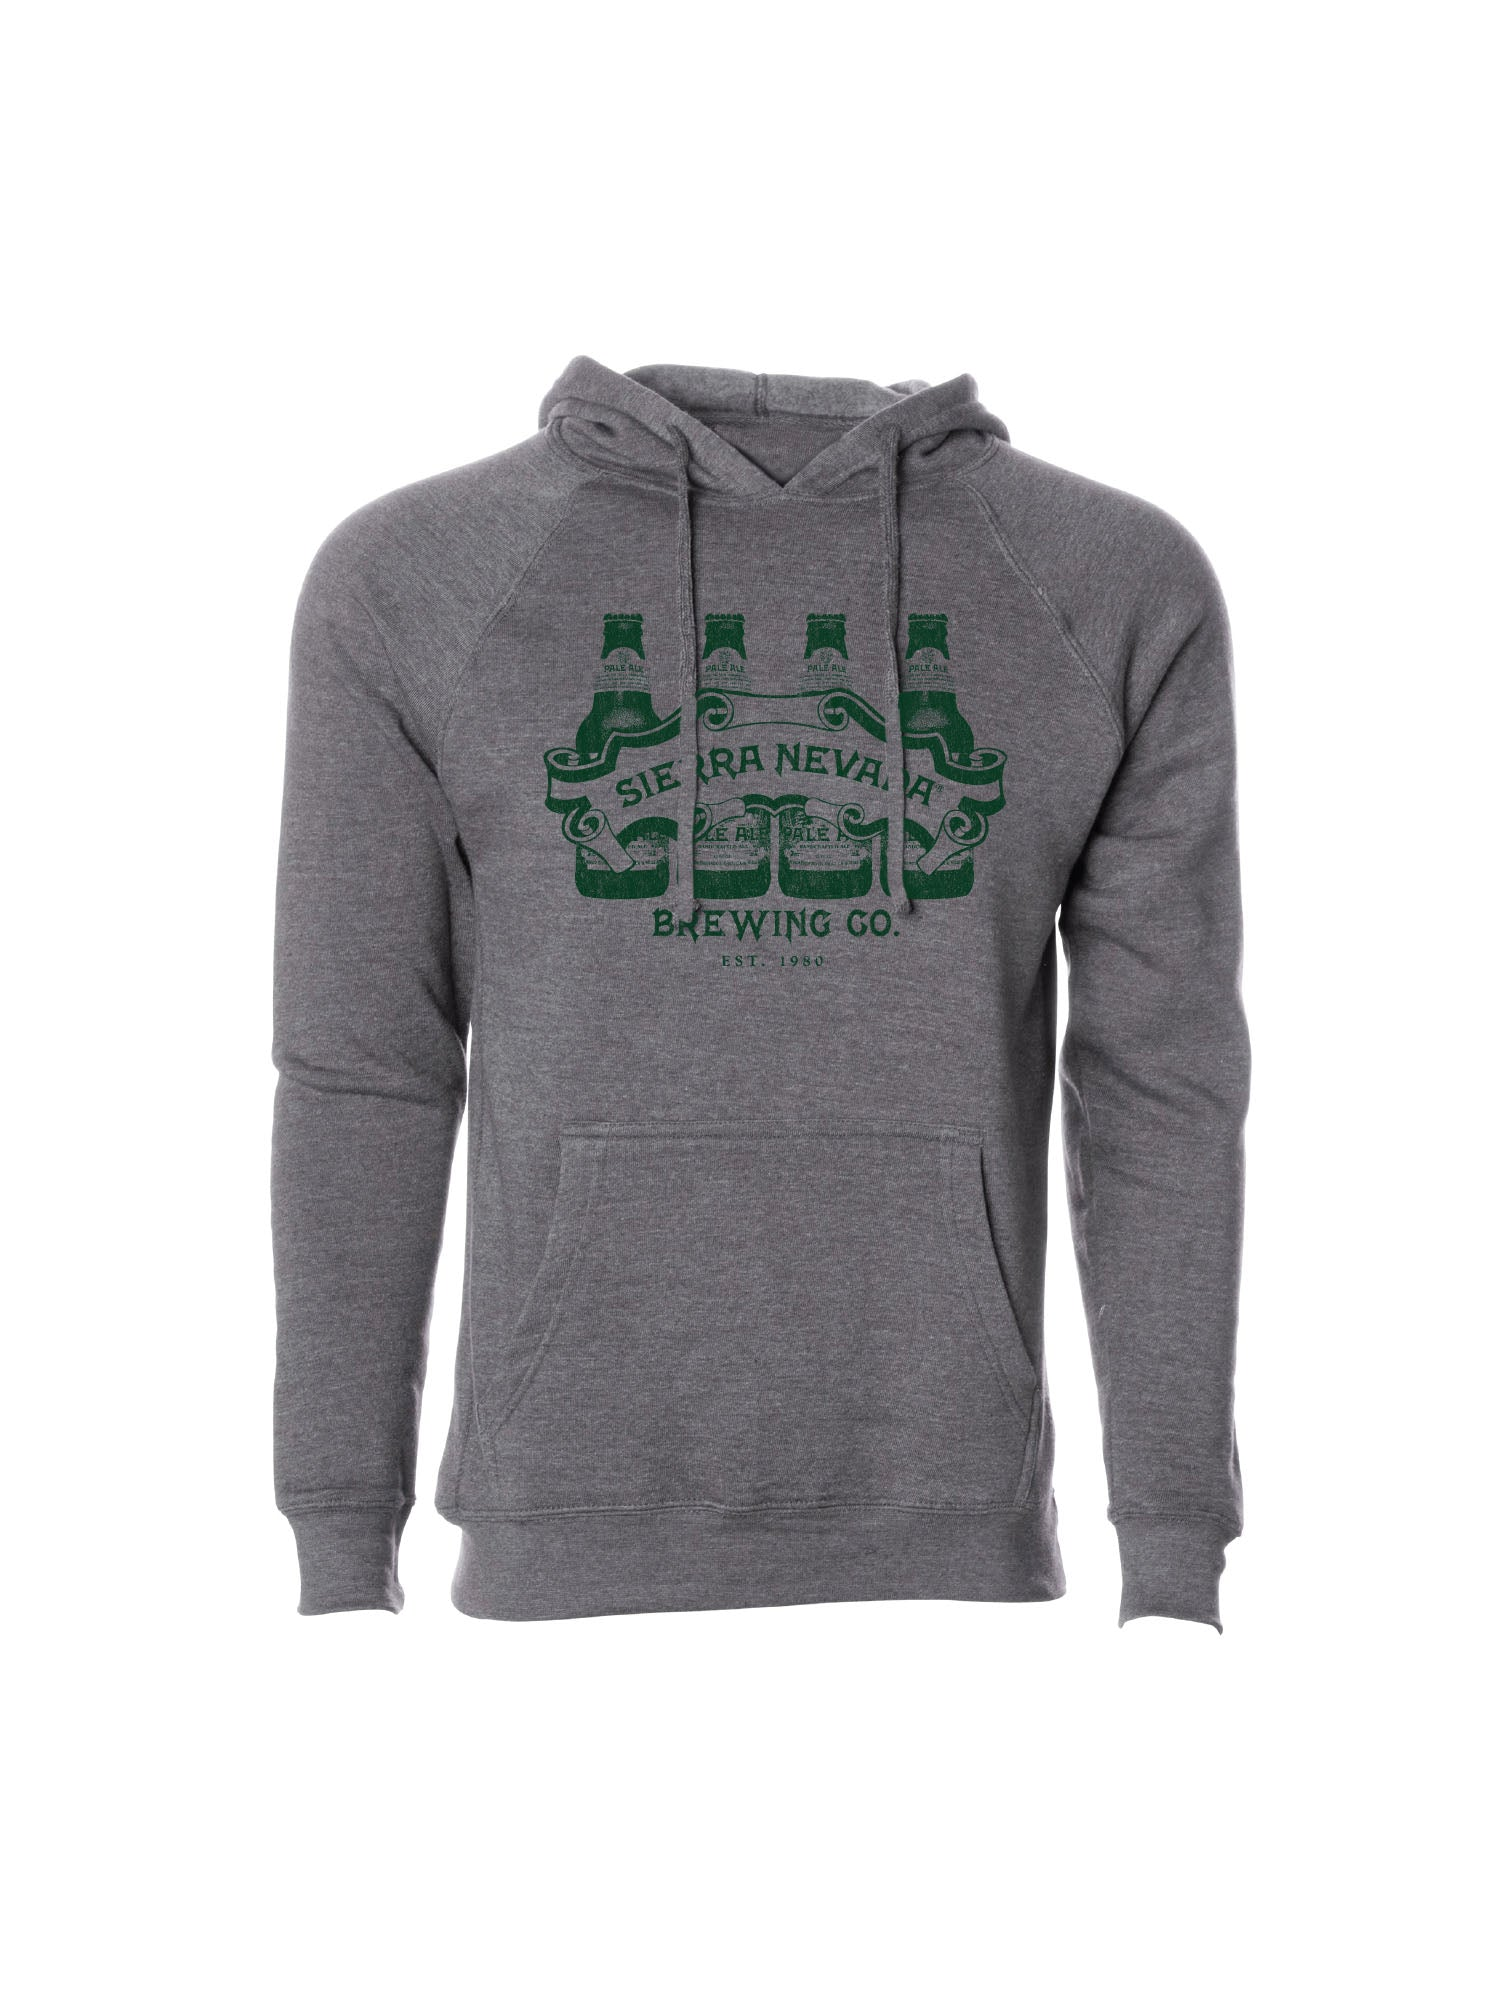 BOTTLE LINE UP HOODIE - Anderson Bros Design and Supply